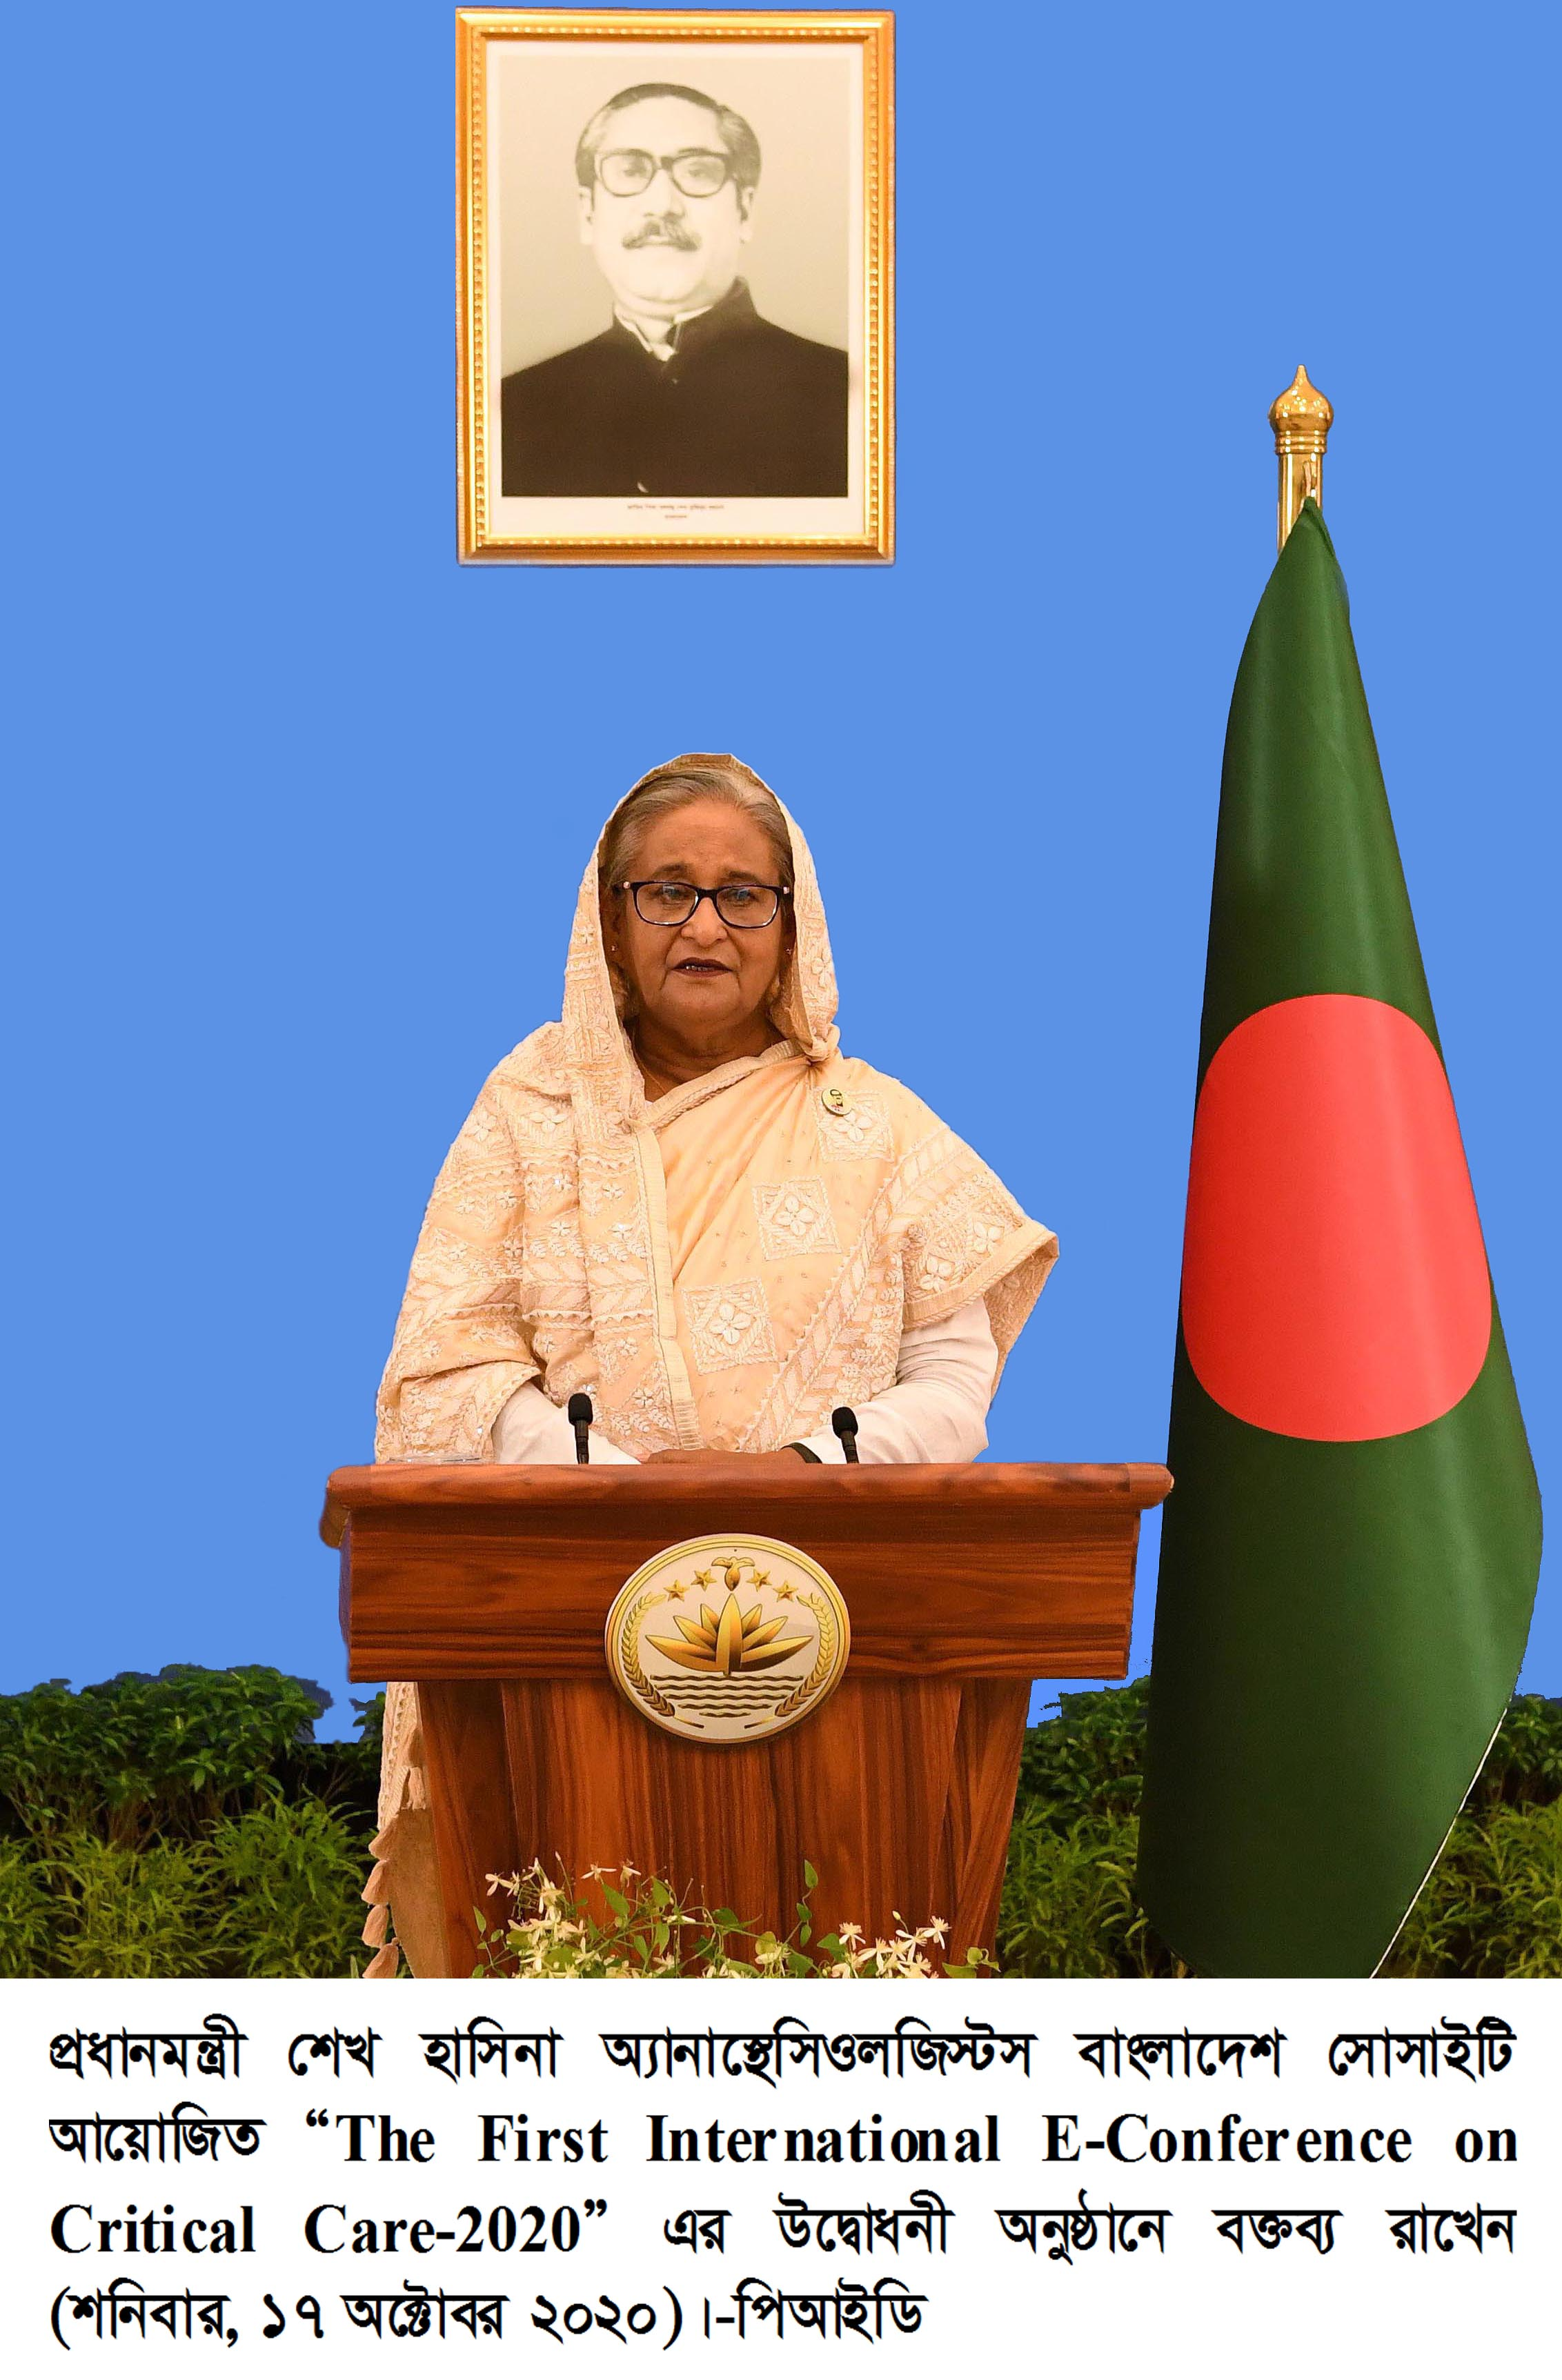 Sheikh Hasina attends special event